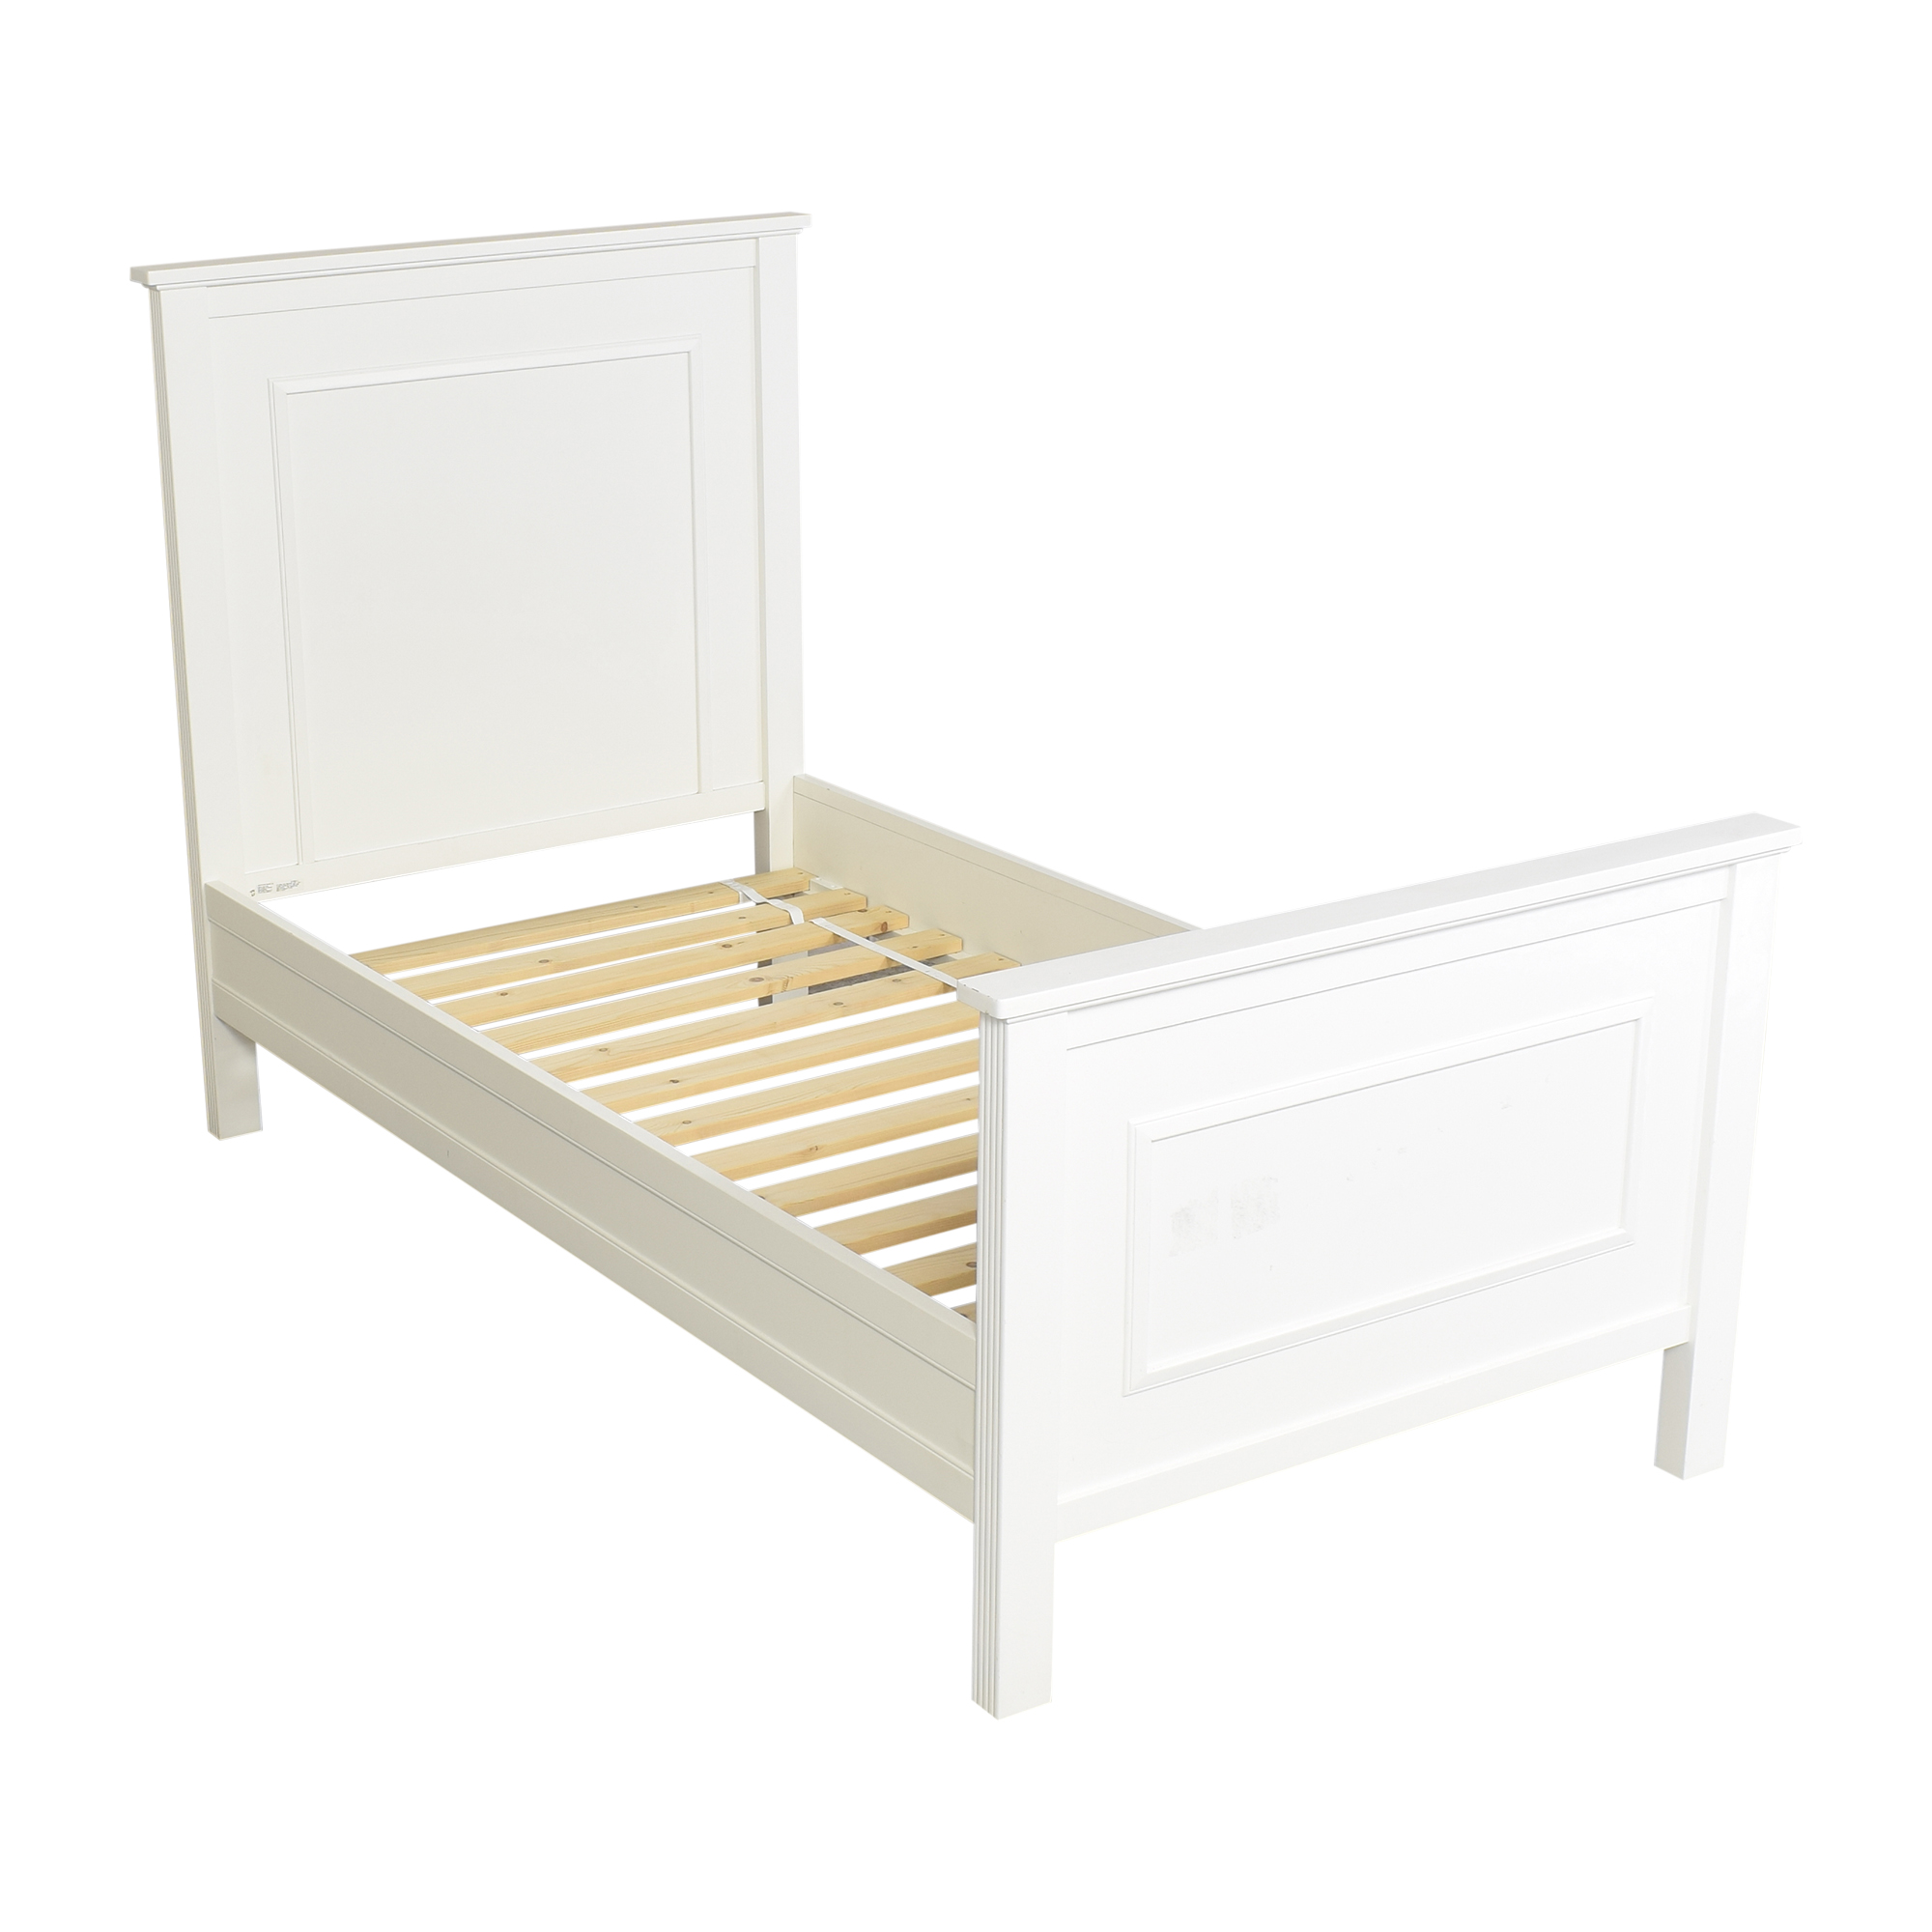 Pottery Barn Kids Pottery Barn Kids Fillmore Twin Bed for sale